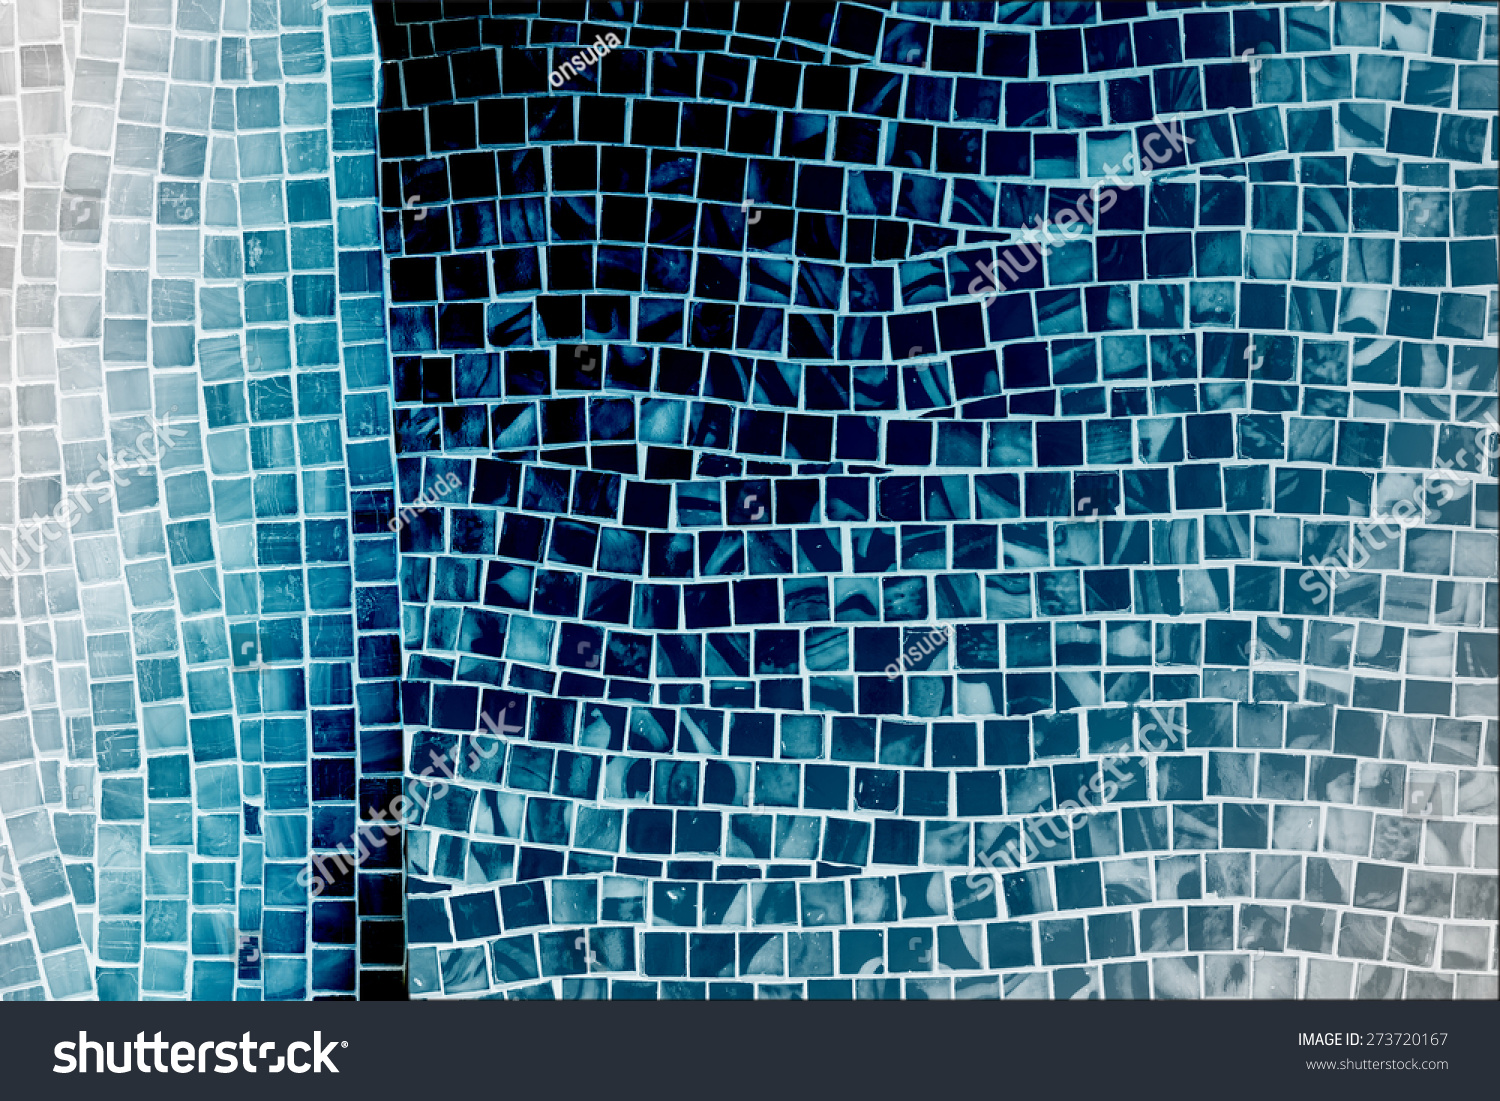 Rough Blue Mosaic Tile Wall Bathroom Stock Photo (Download Now ...